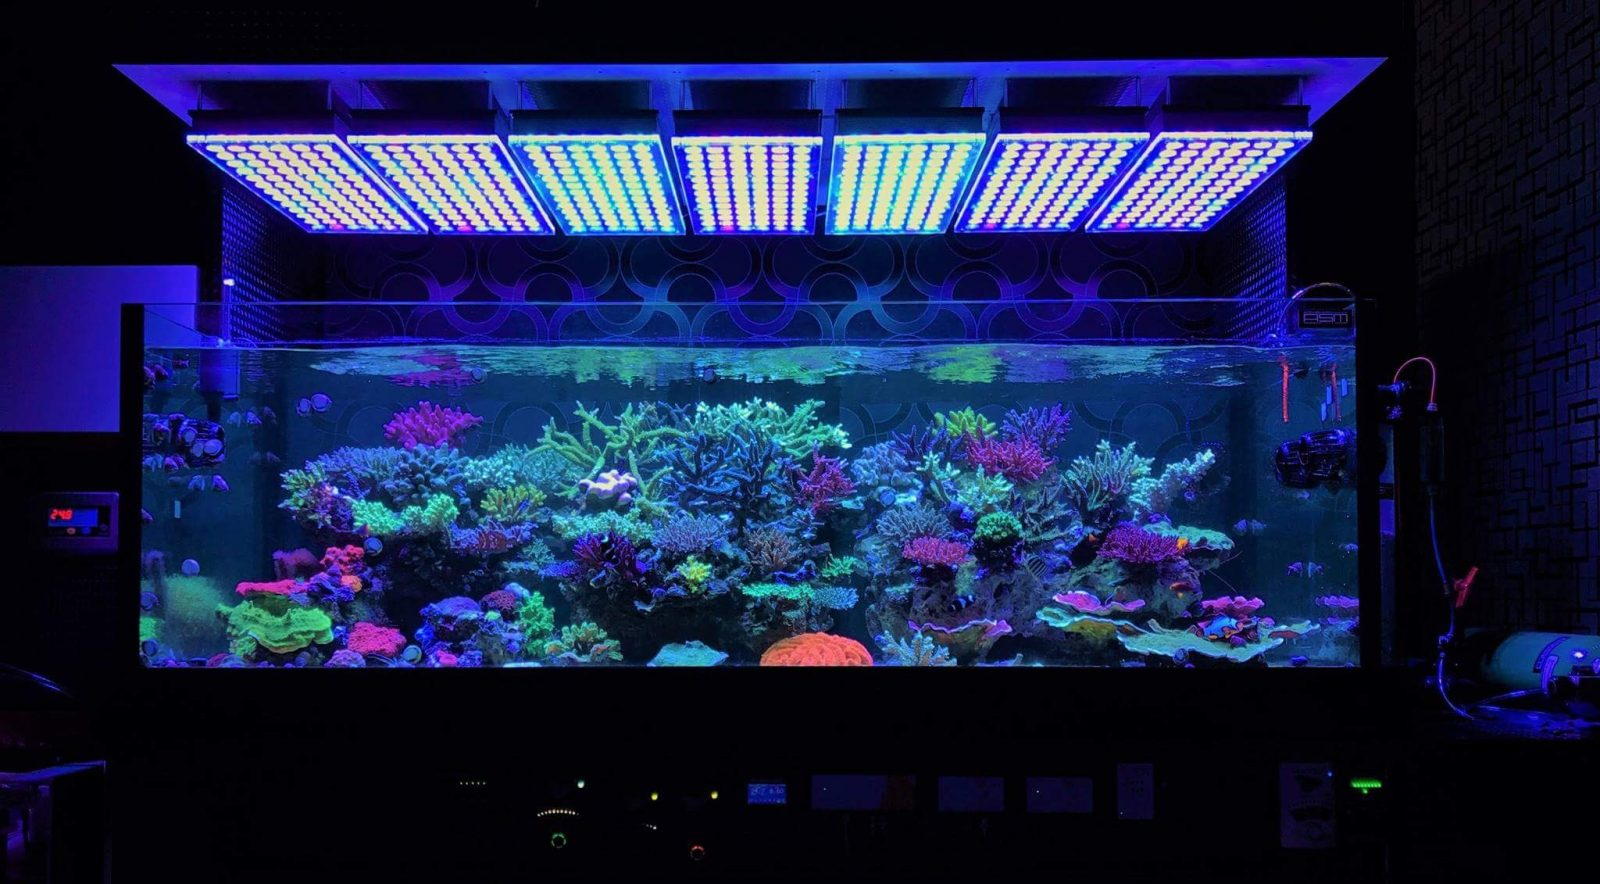 amazing-Reef-akvarium-LED-lys